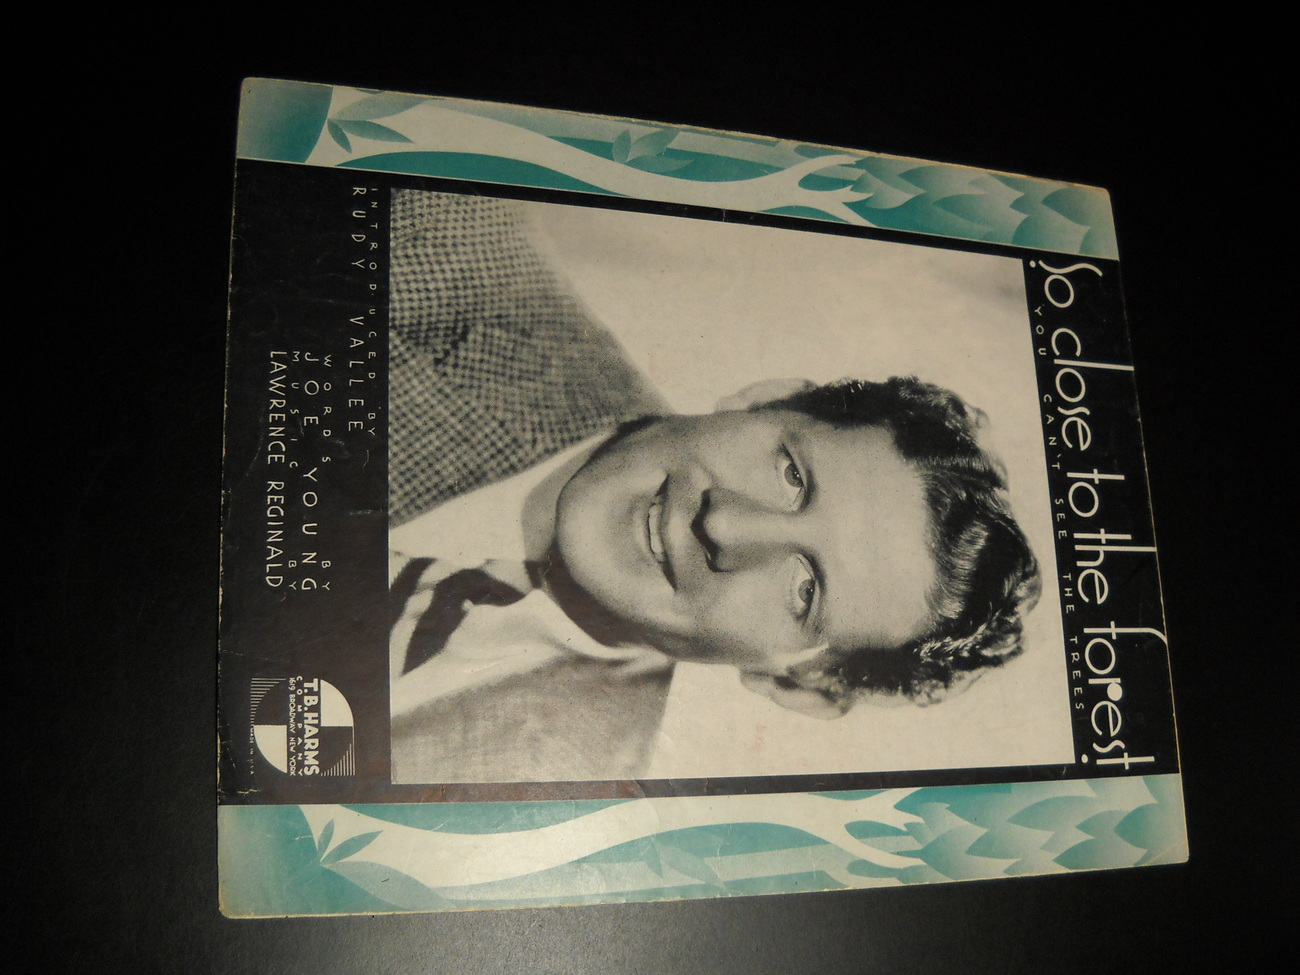 Sheet_music_so_close_to_the_forest_you_can_t_see_the_trees_rudy_vallee_1934_harms_01